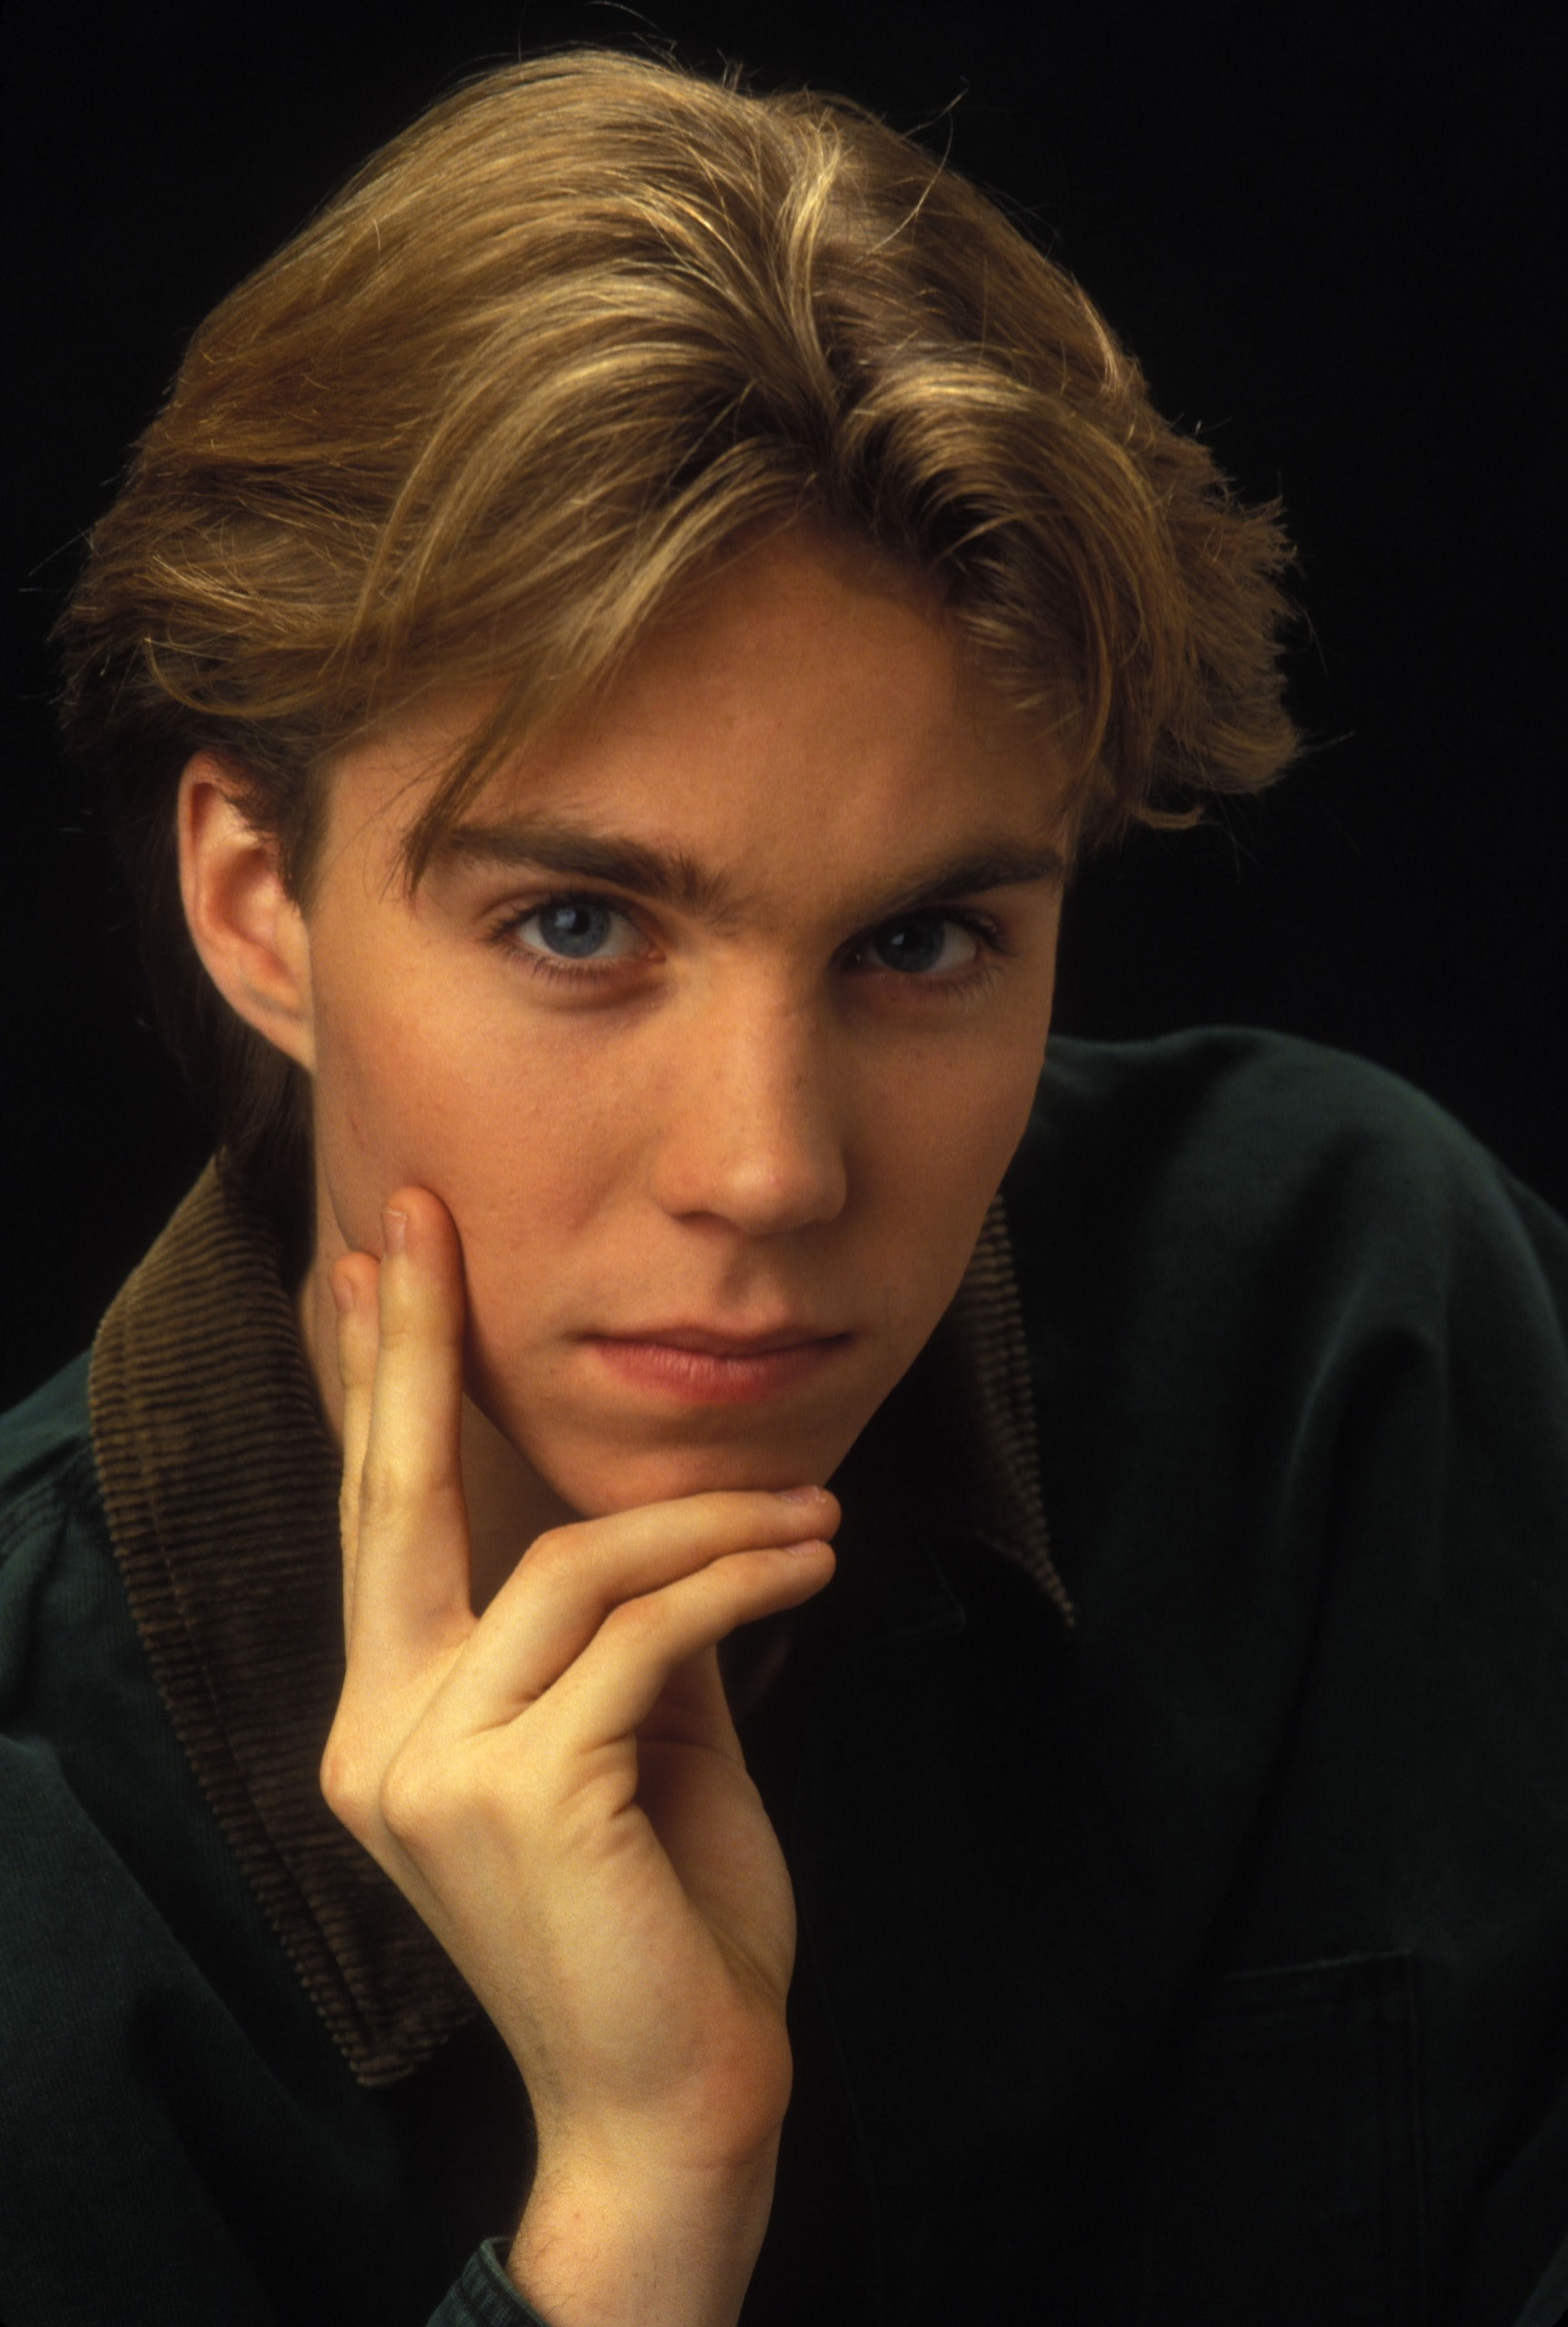 Jonathan Brandis Wallpapers hd